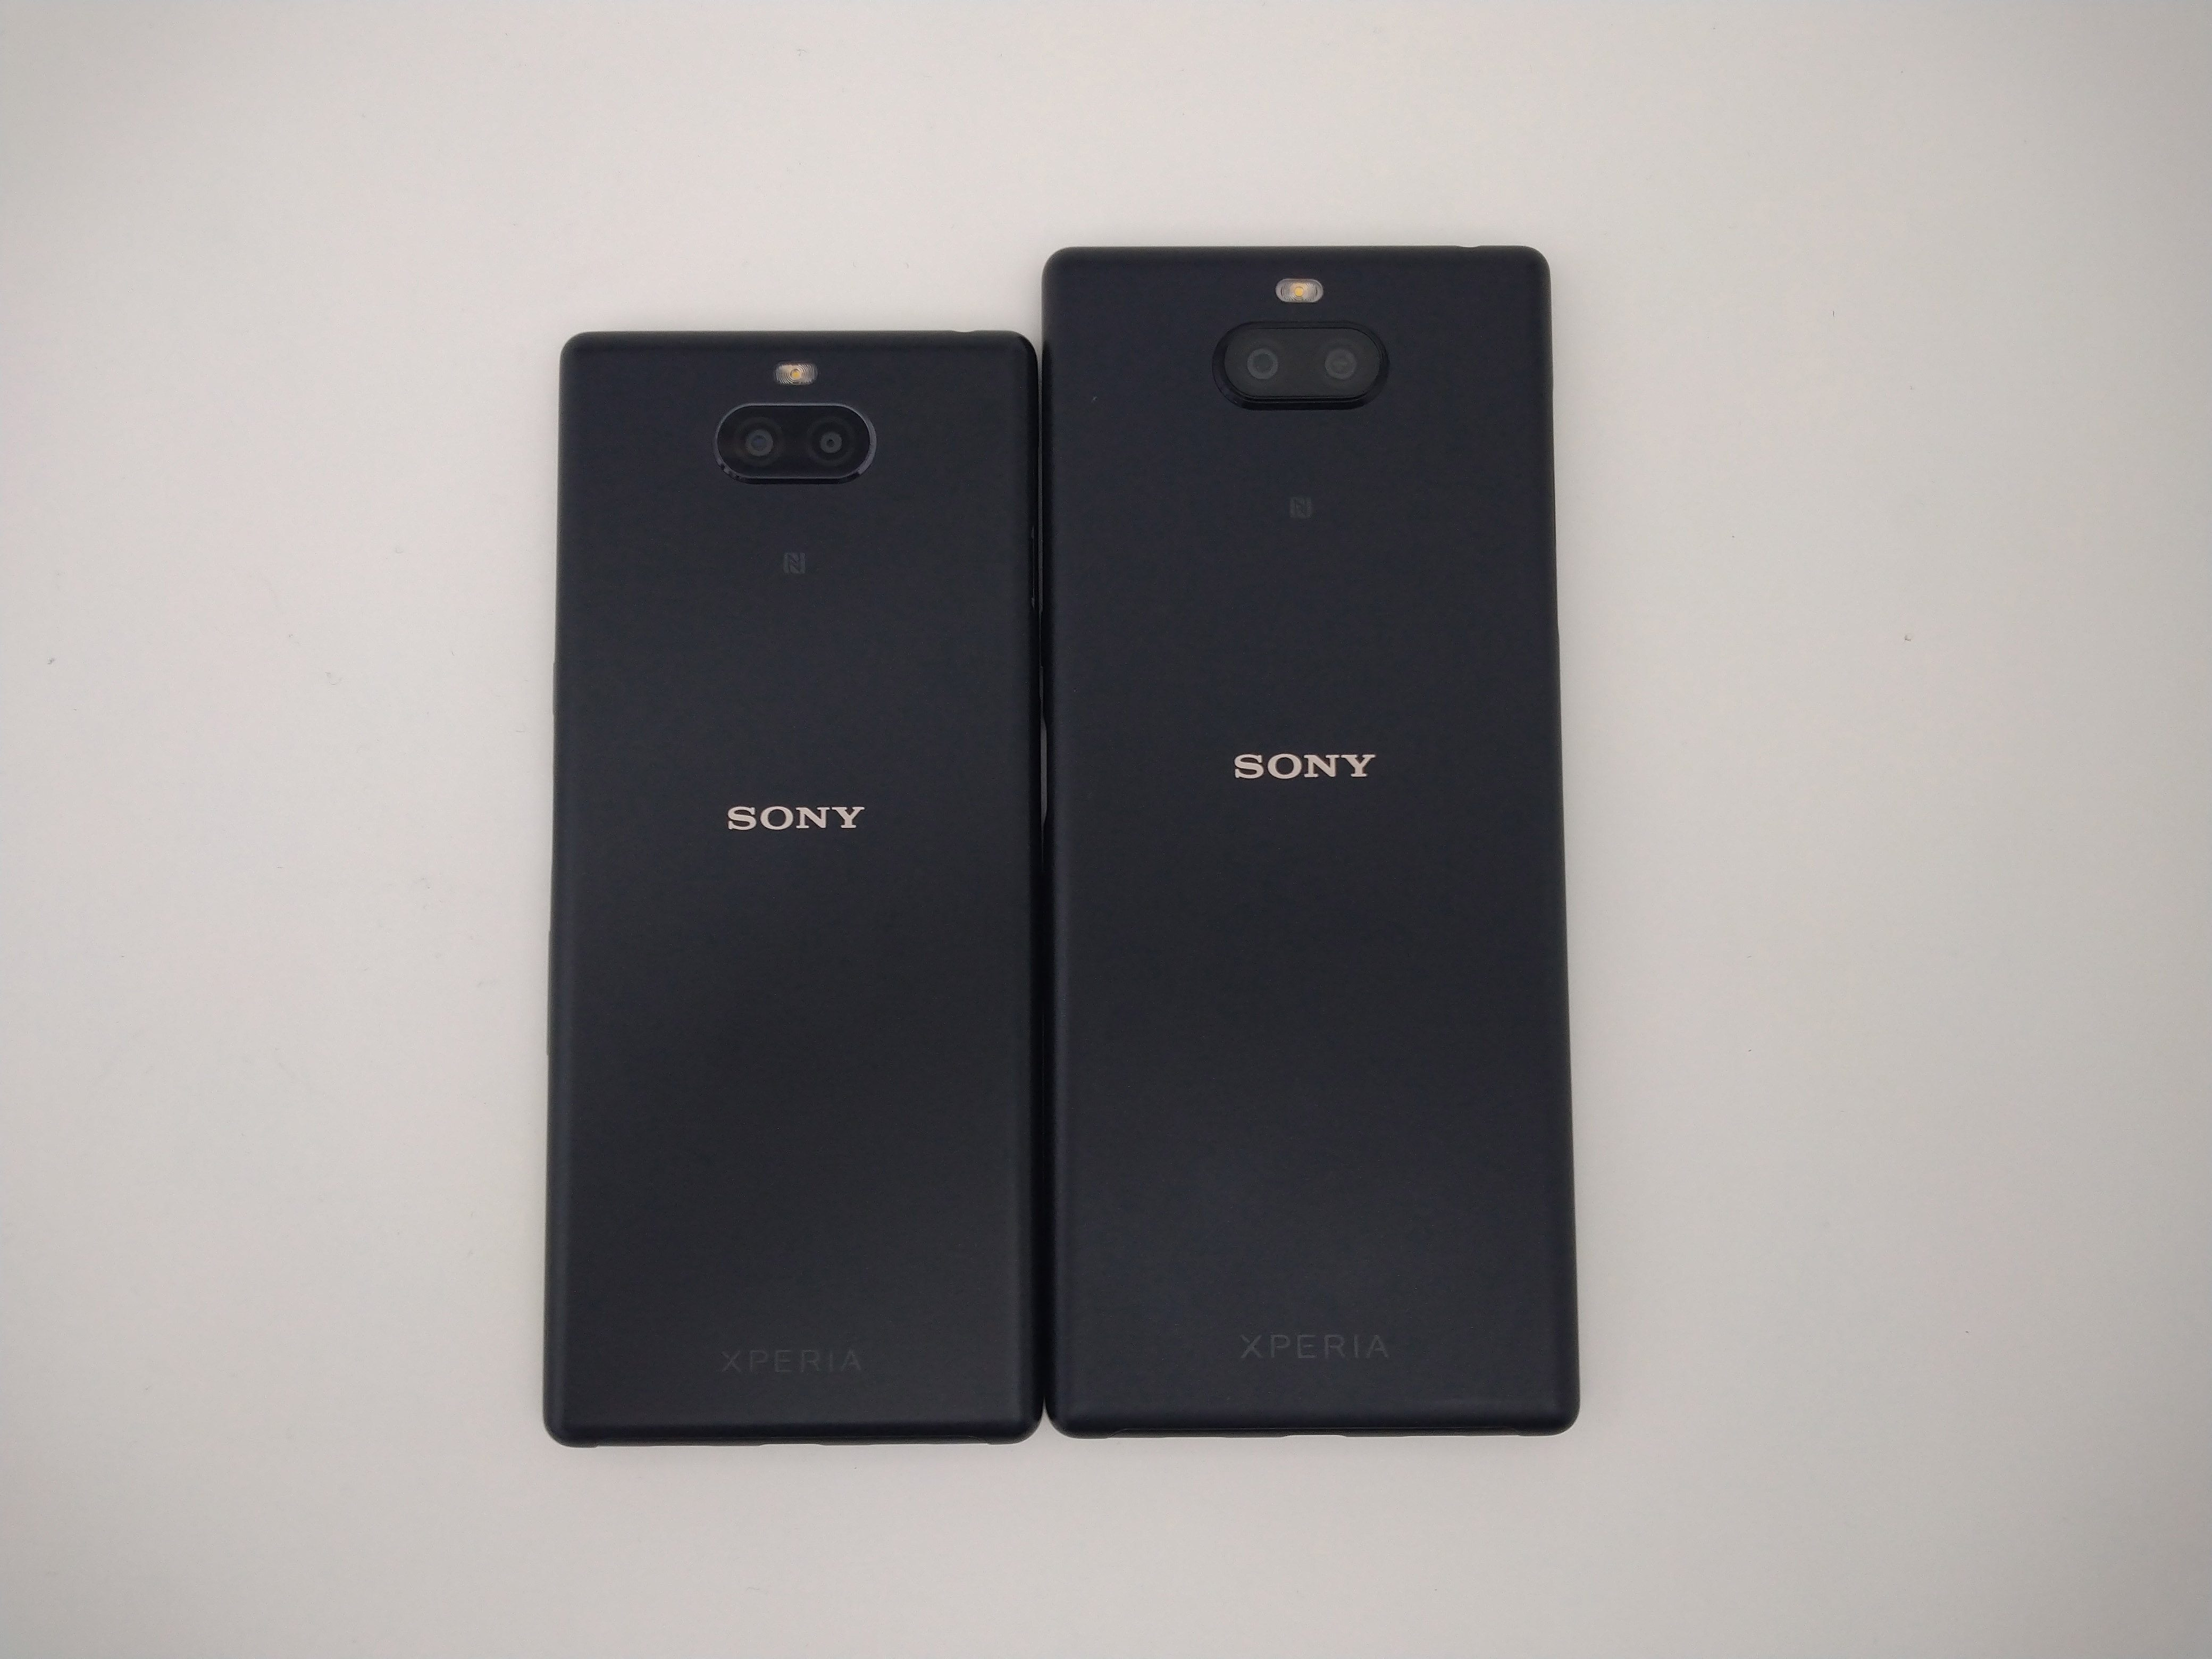 Sony Xperia 10 & 10 Plus camera test: good, but not great